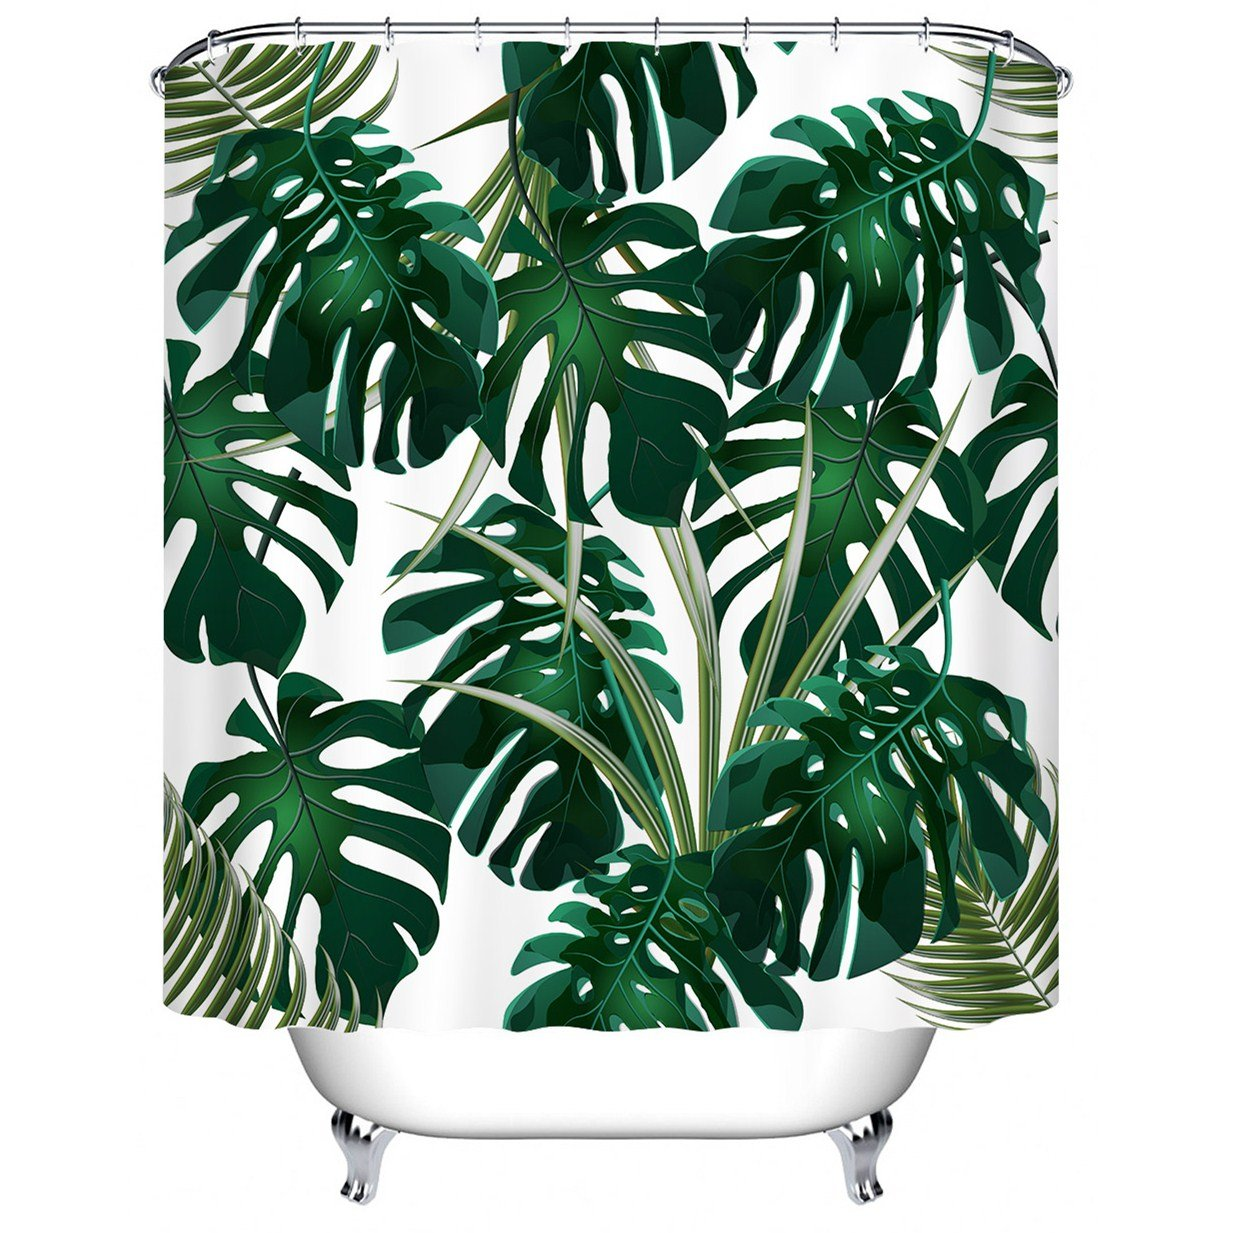 LB Monstera Shower Curtain,Dark Green Tropical Palm Leaves Waterproof Bath Curtain for Bathroom Decor,12pcs Hooks Included,70x70INCH(White) YL6937-180